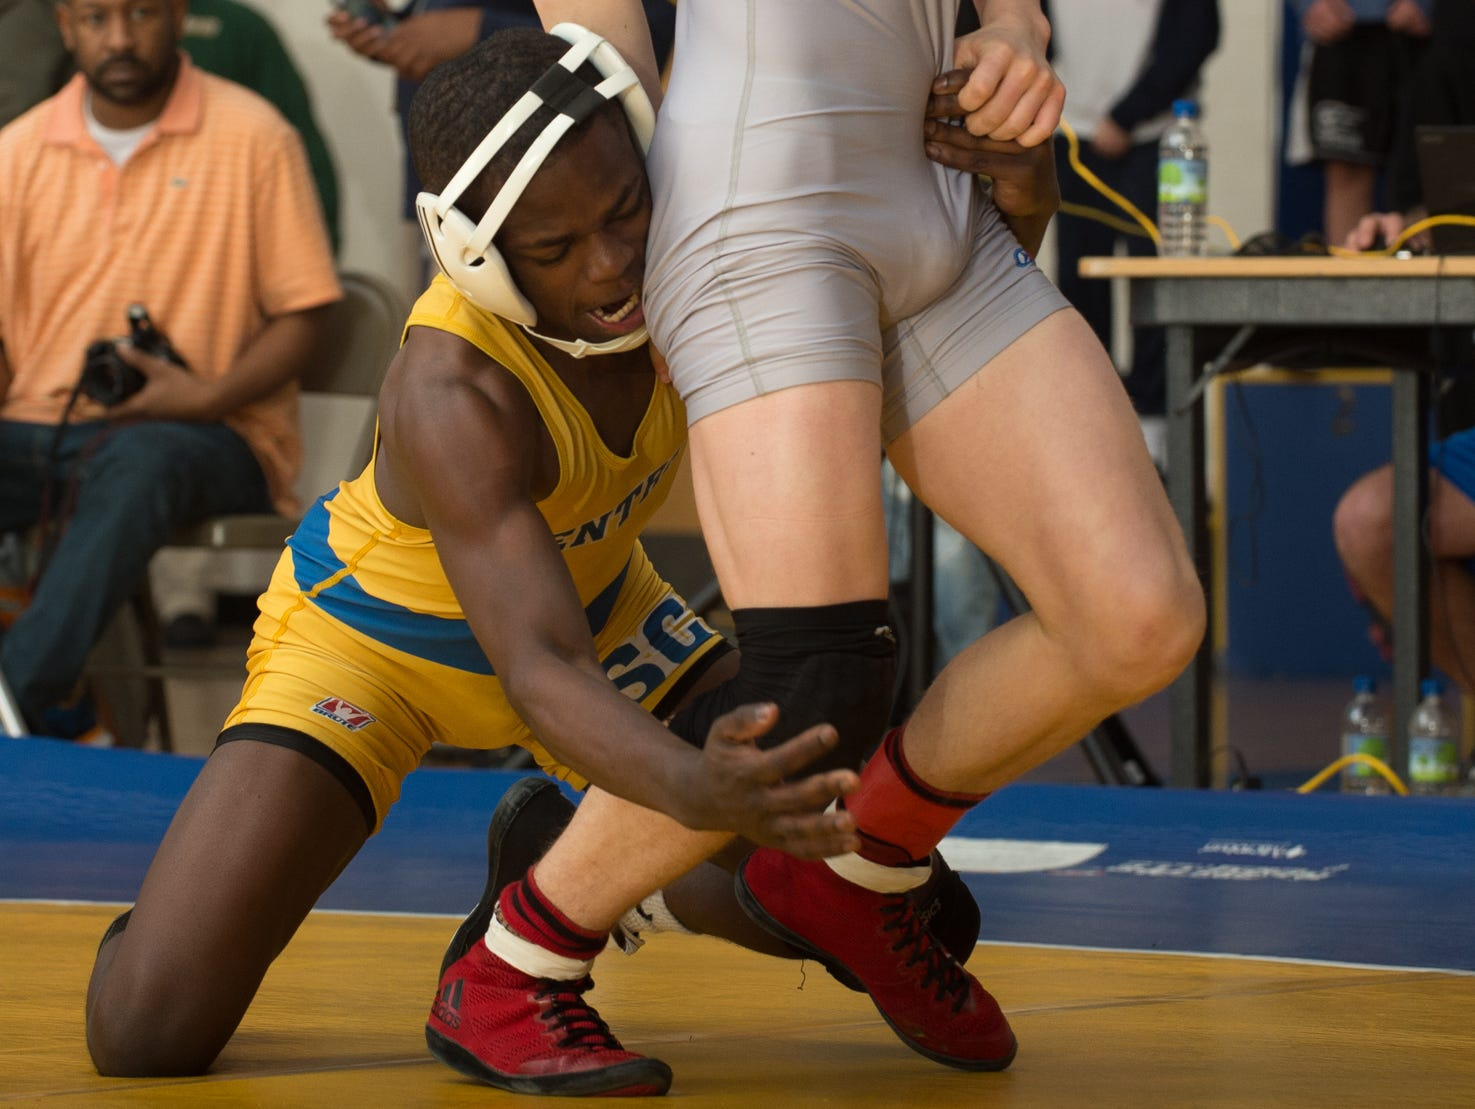 Sussex Central's Rashad Stratton goes for the legs of Smyrna's Cole Sebastianelli in the 126 pound championship match at the Henlopen Conference wrestling tournament at Sussex Central High School.